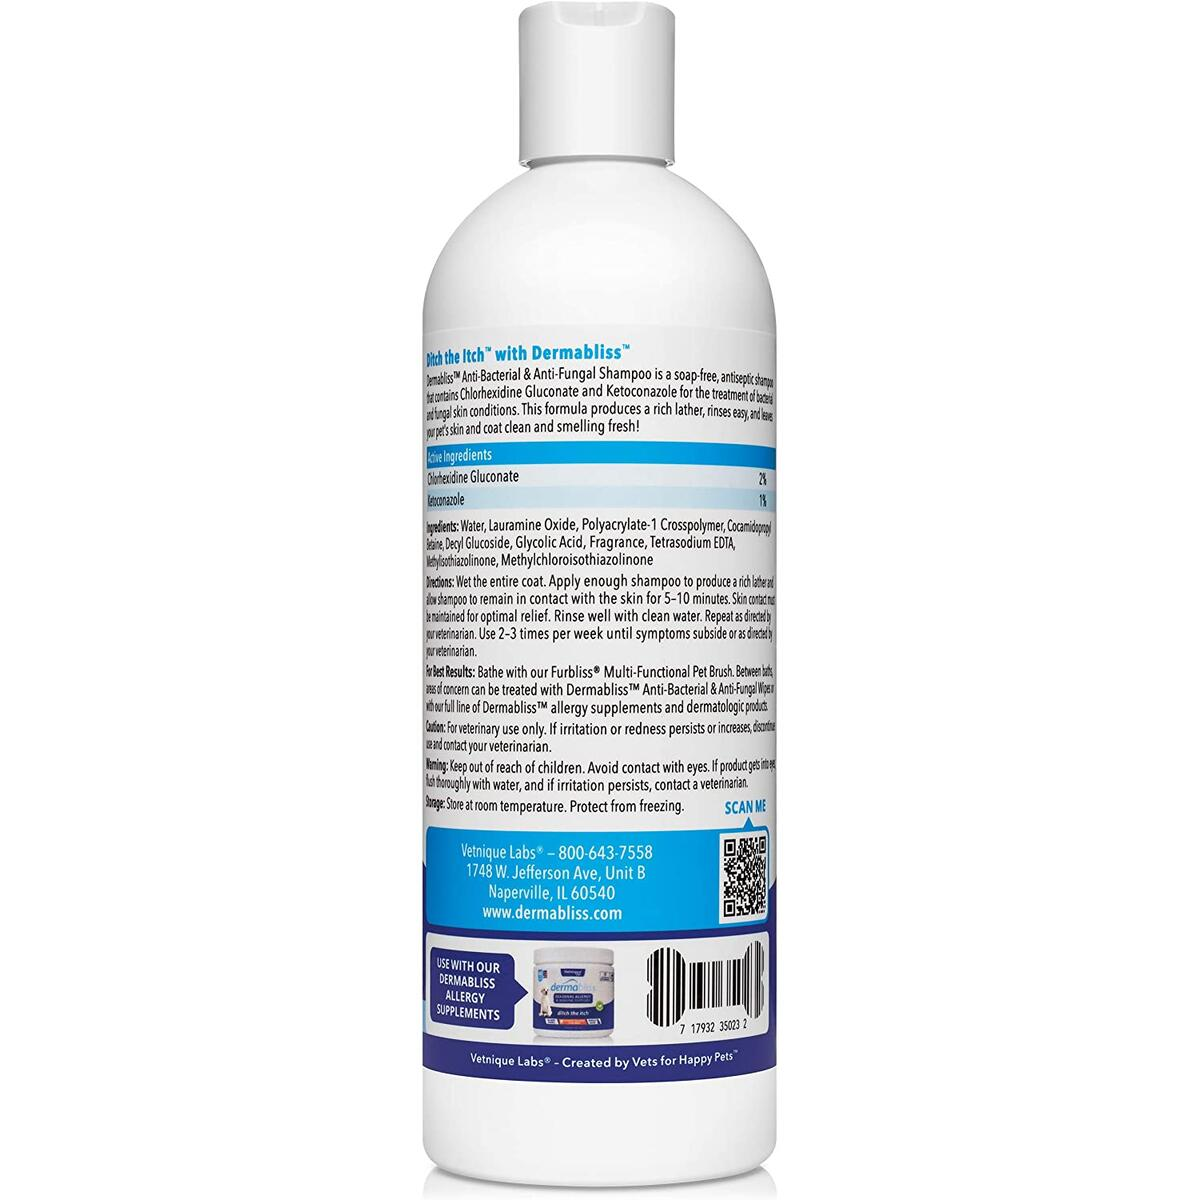 Dermabliss Anti Bacterial and Anti Fungal Medicated Dog and Cat Shampoo